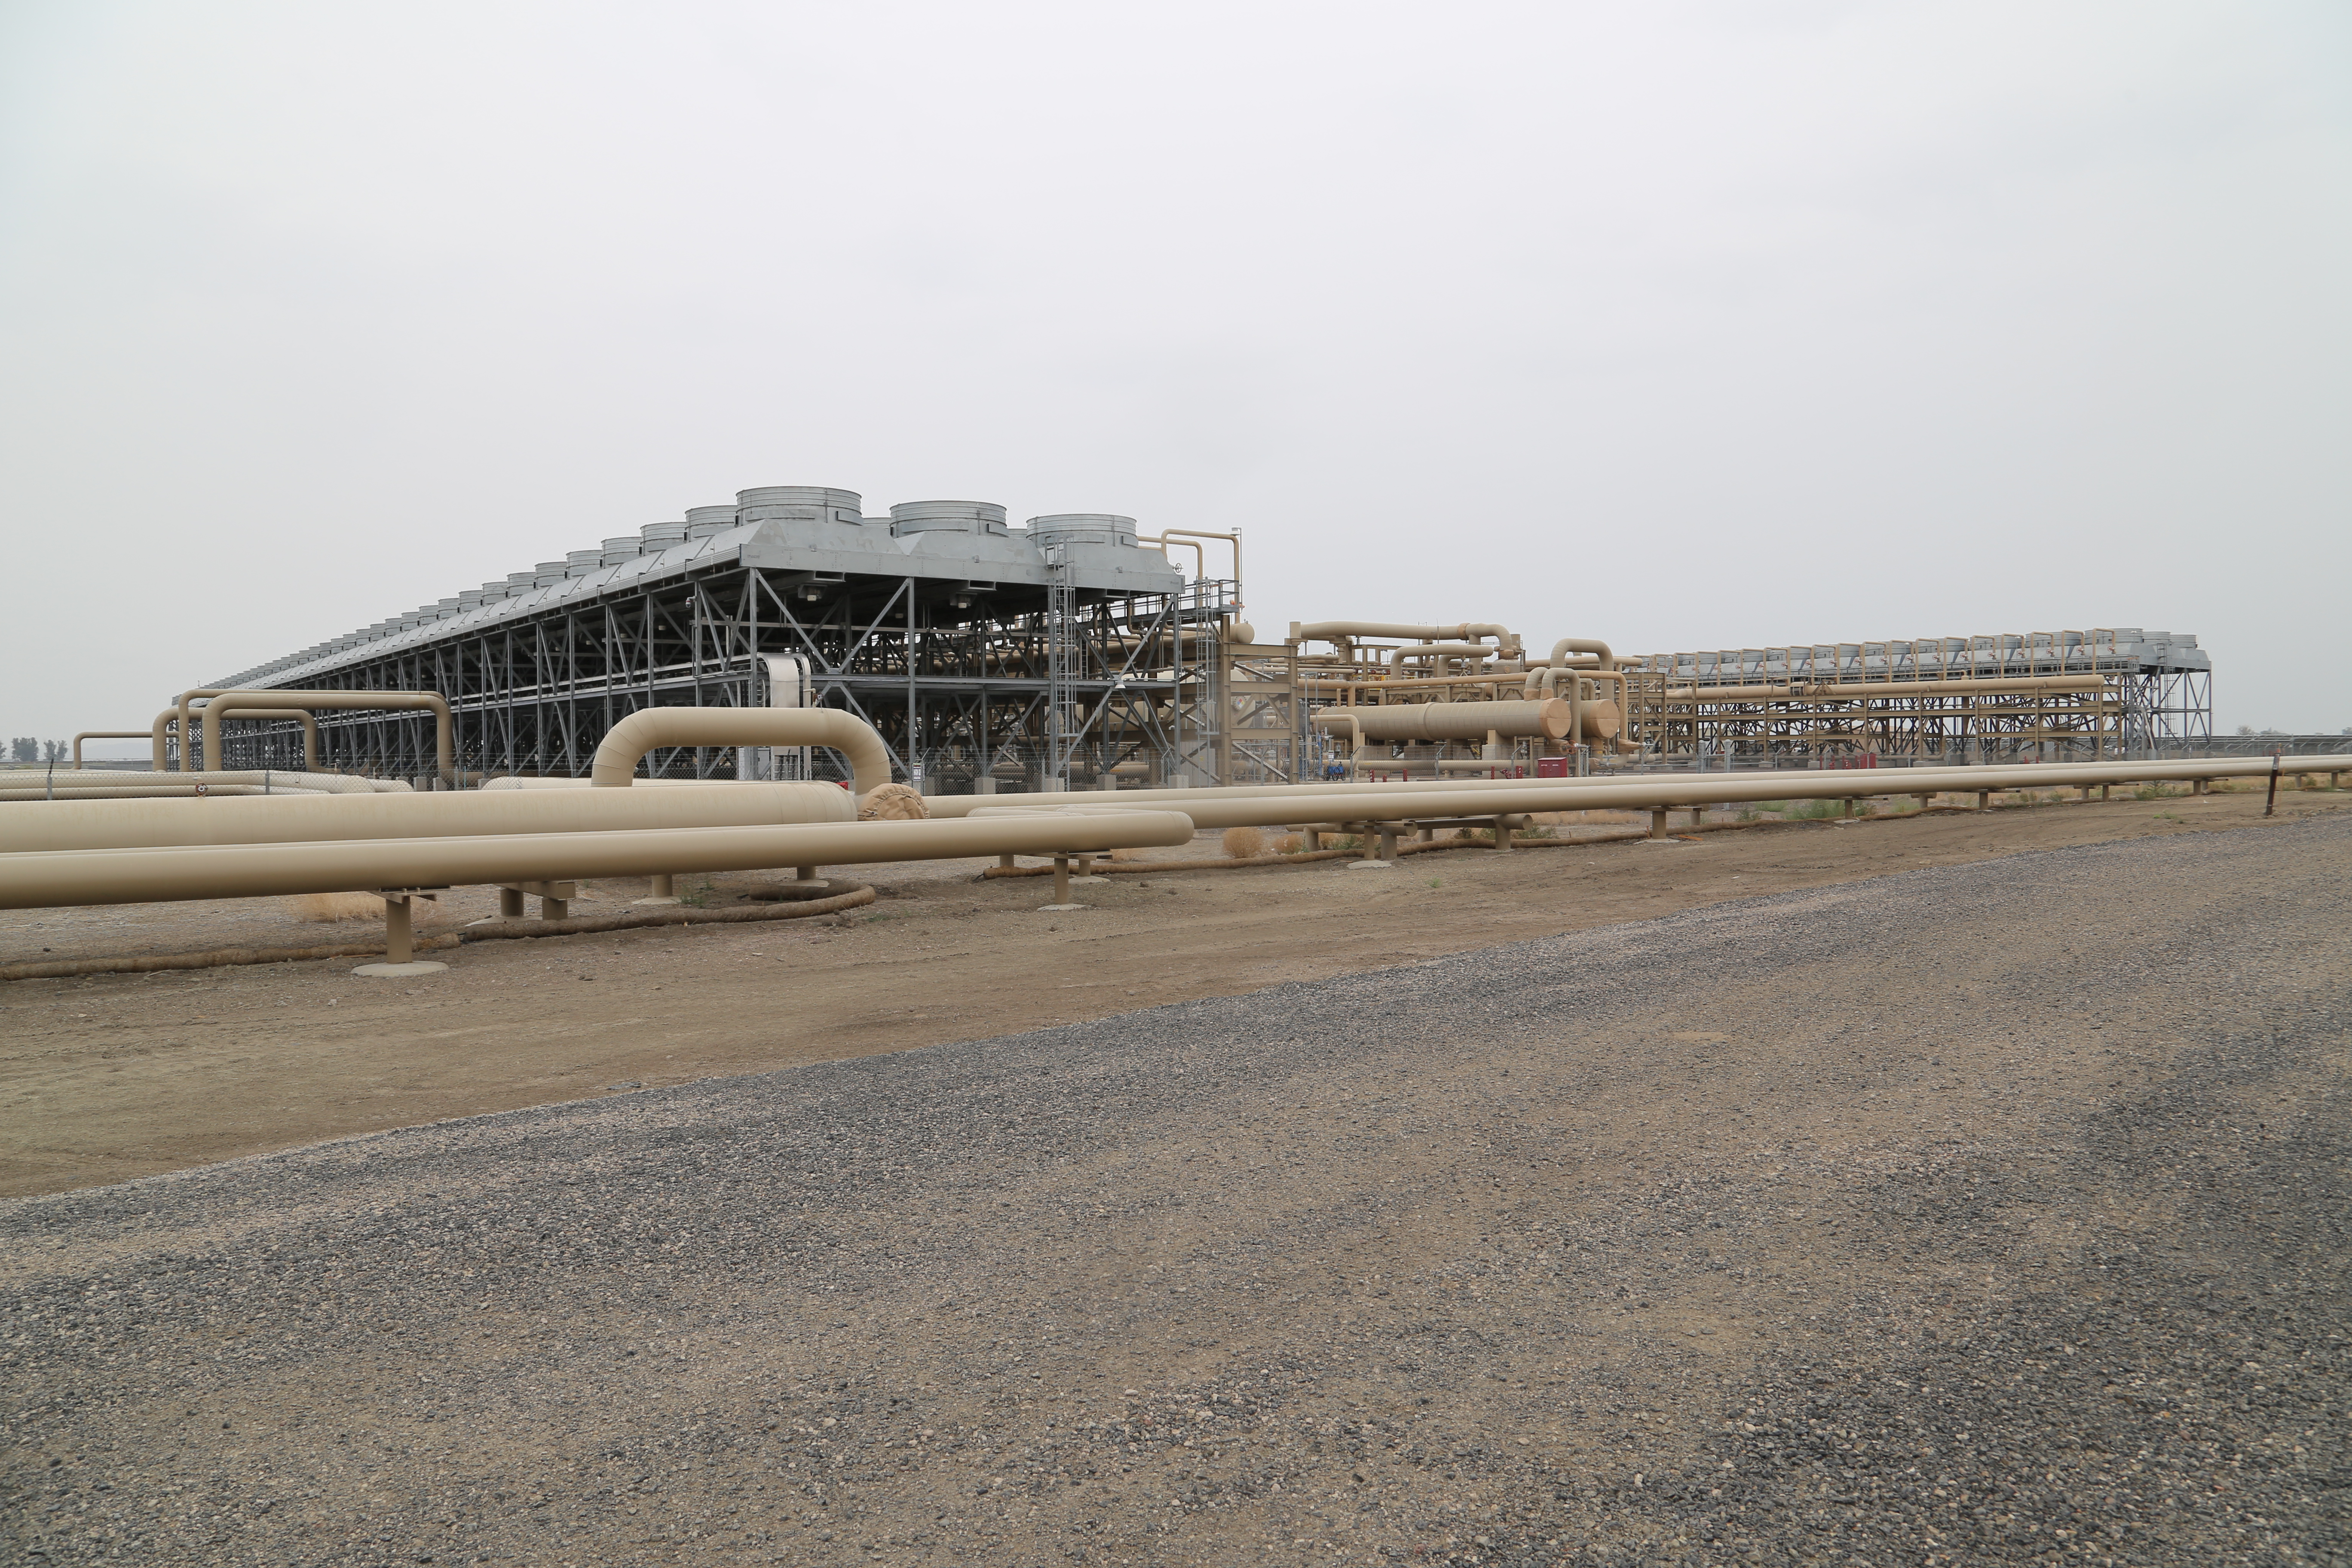 The Stillwater geothermal plant uses a binary closed loop system. Image courtesy of Katie Fehrenbacher, Gigaom.